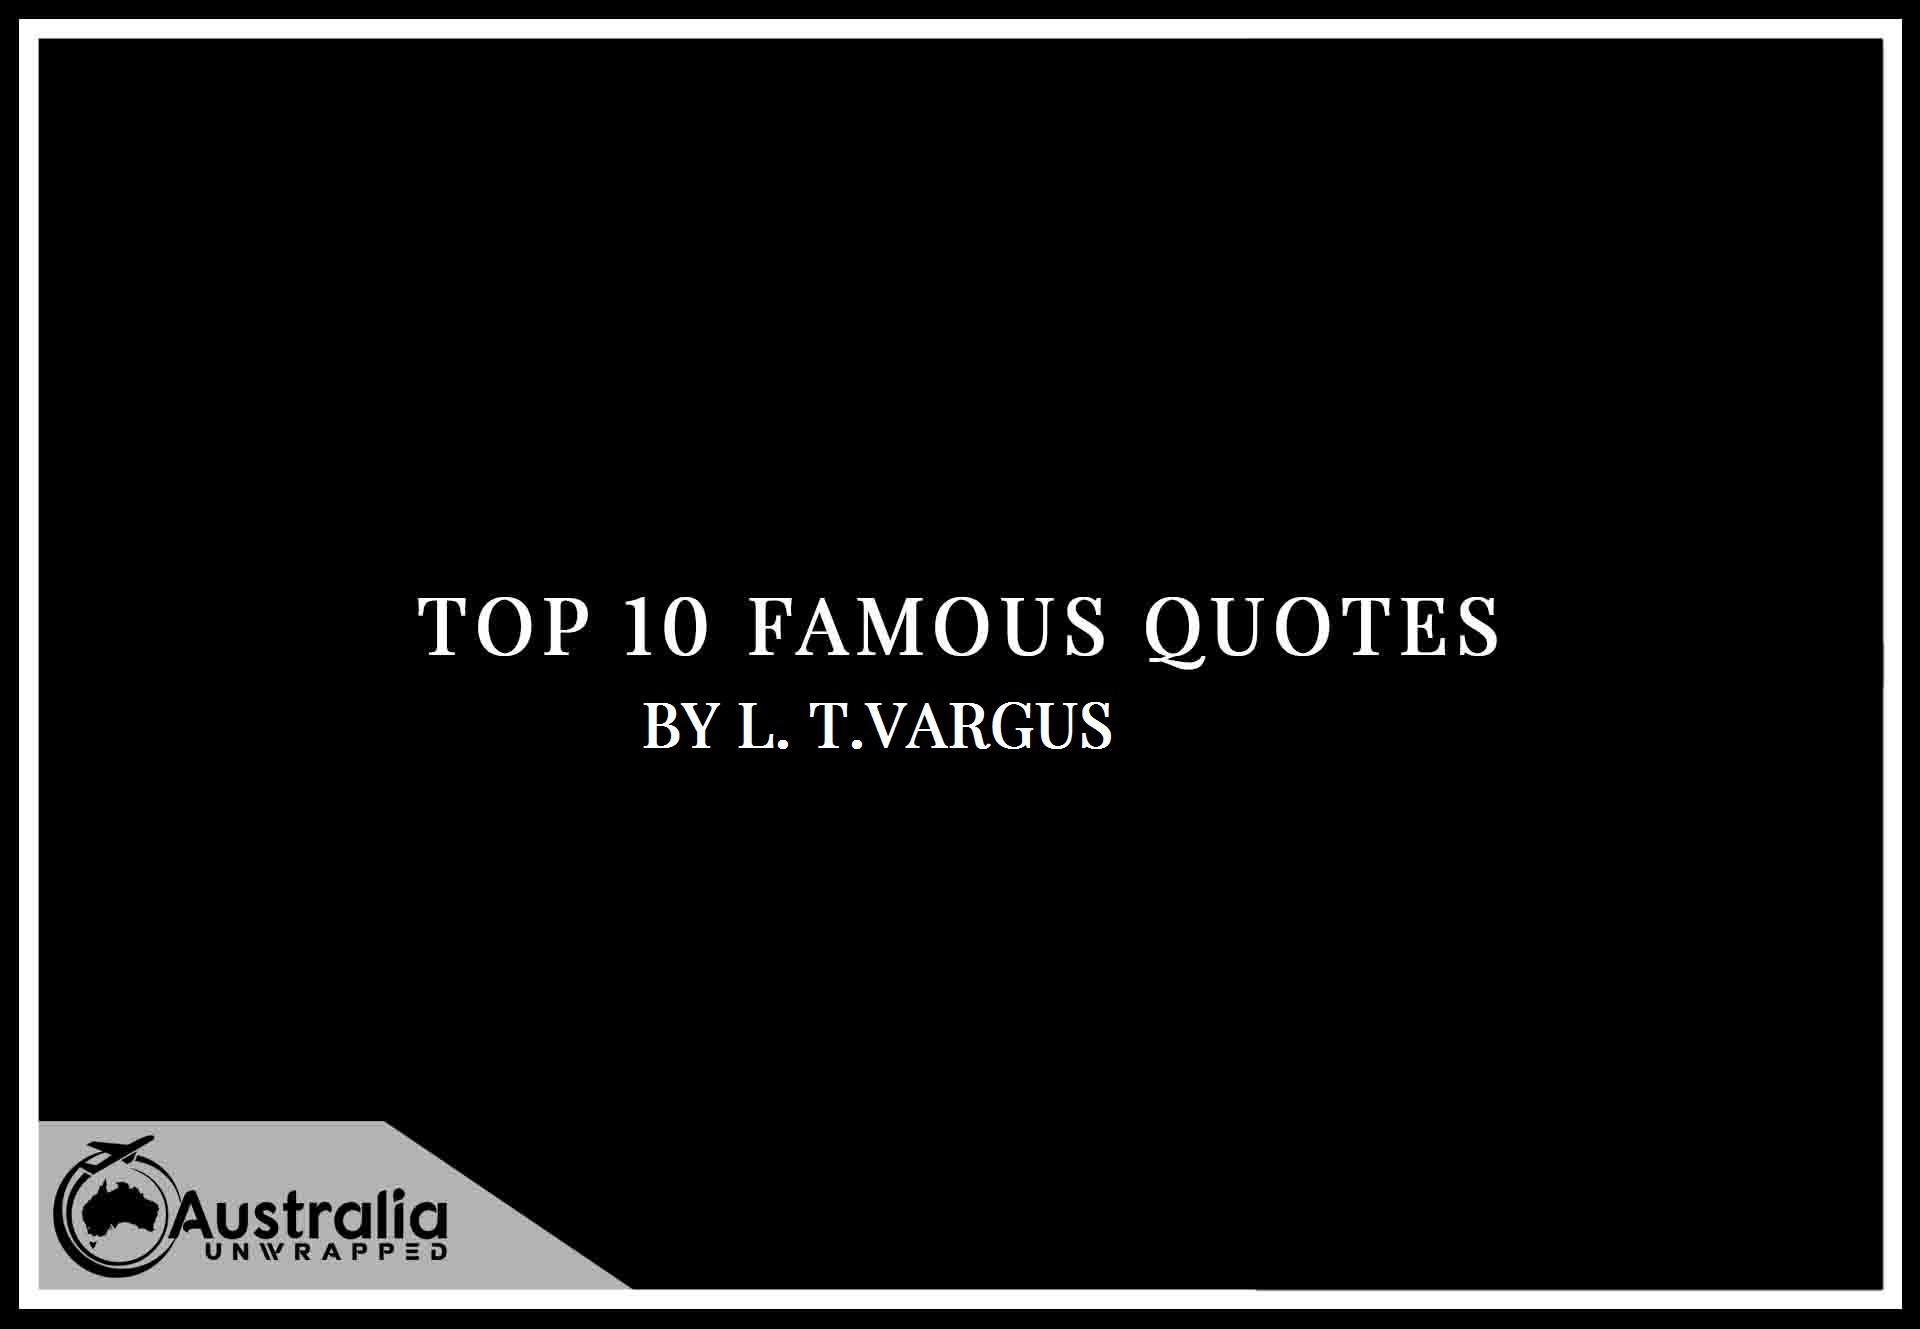 L.T. Vargus's Top 10 Popular and Famous Quotes